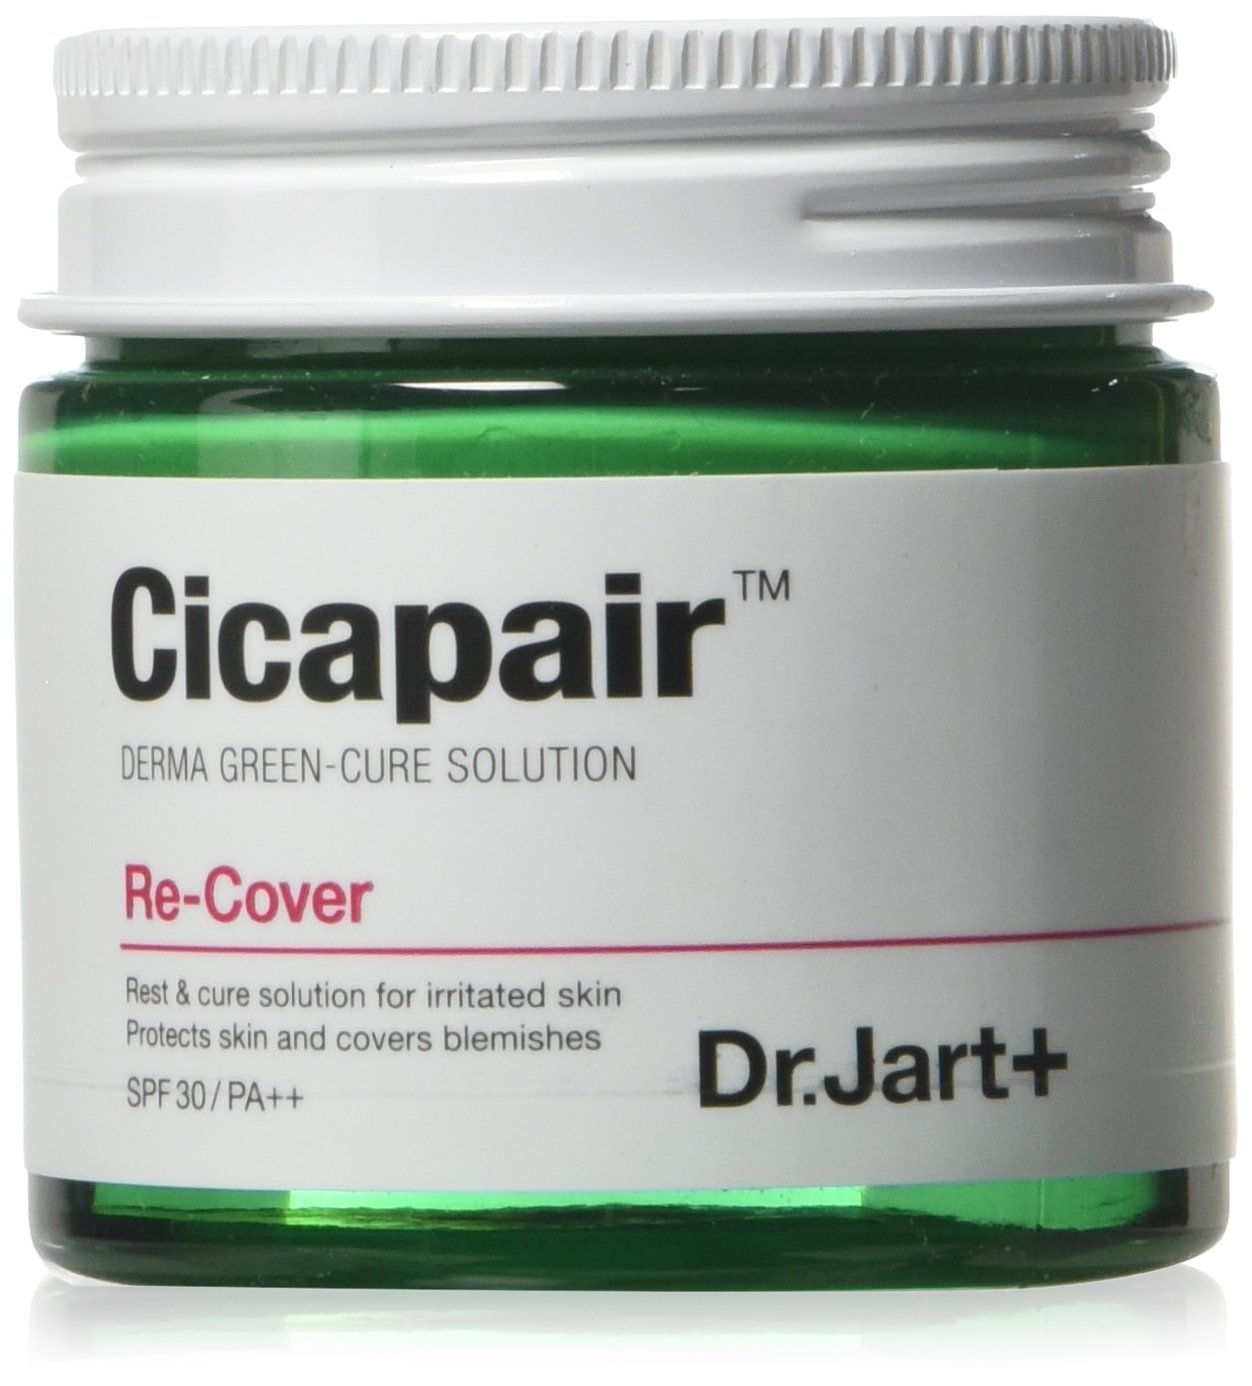 Dr. Jart+ Cicapair Derma Green-Cure Solution Recover Cream 50ml / 1.7fl.oz